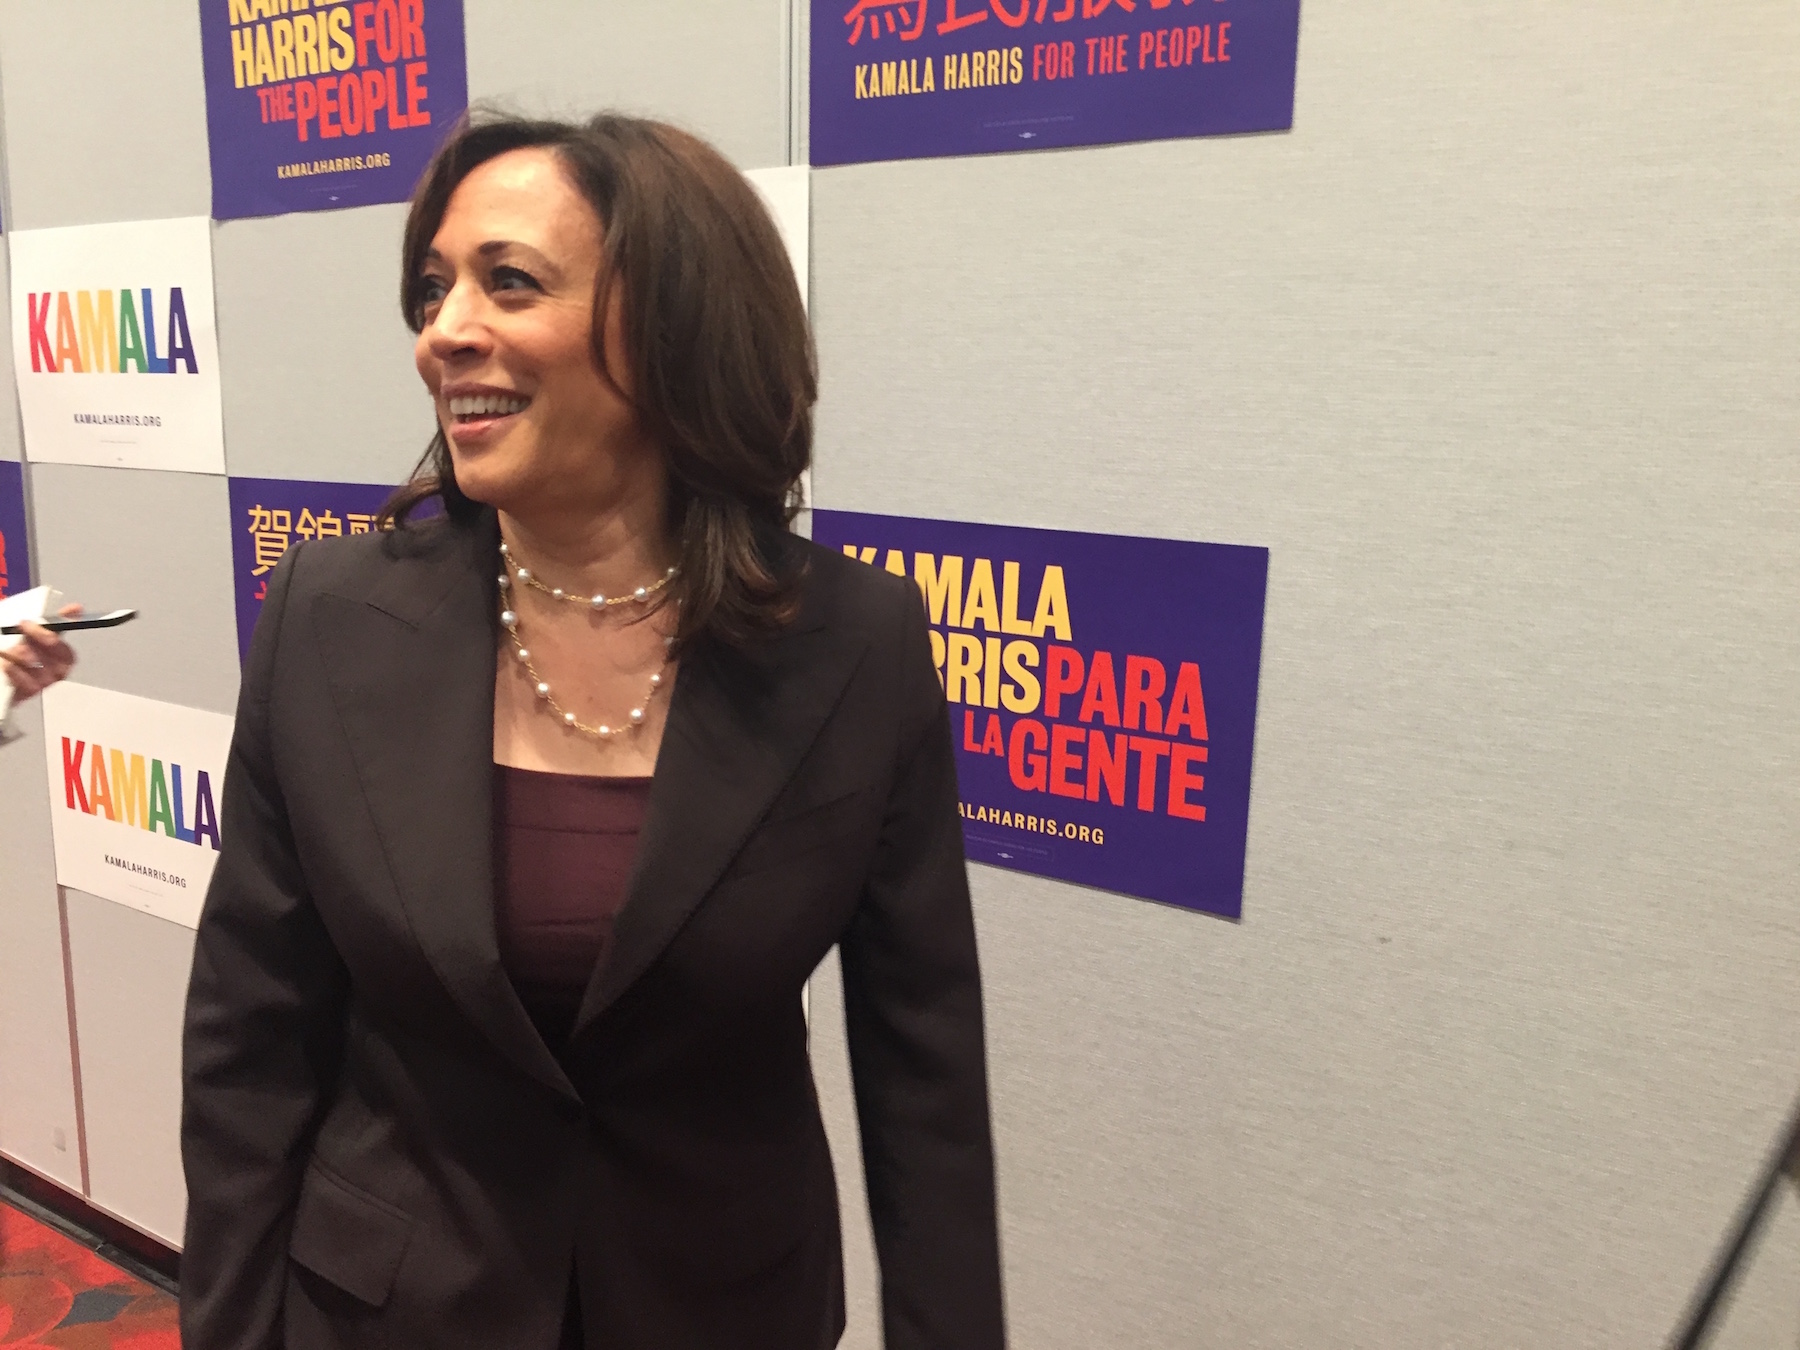 Harris speaks to reporters in front of a campaign backdrop in San Francisco